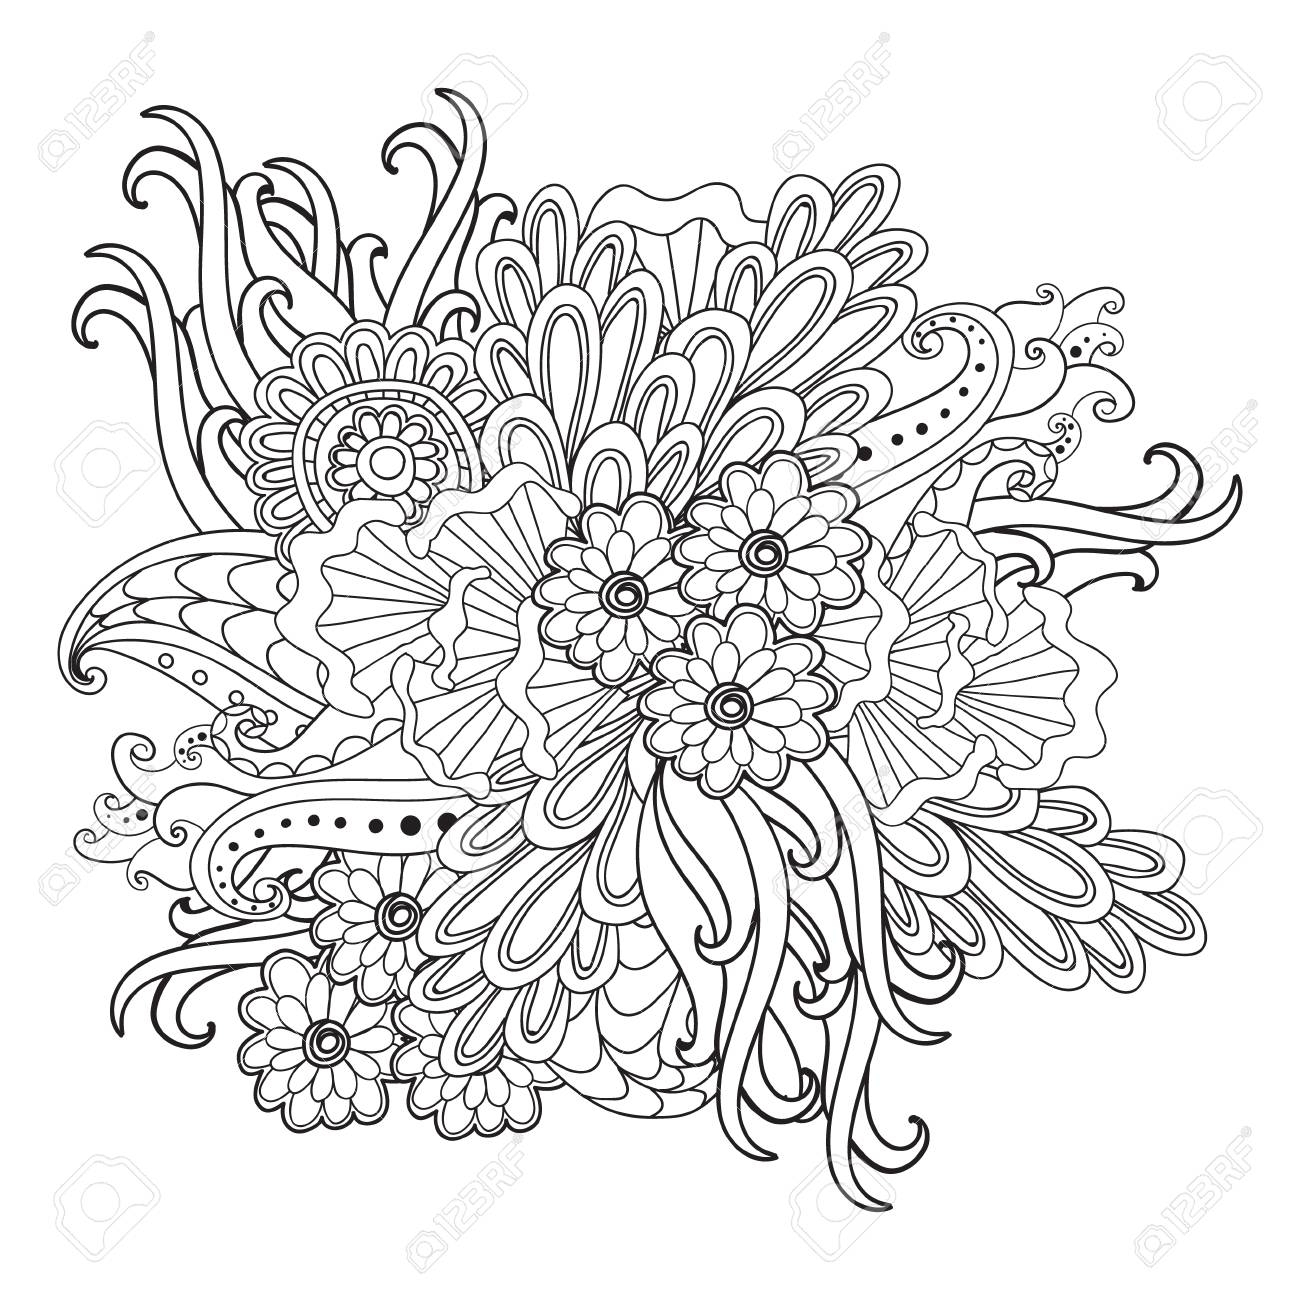 1300x1300 Awesome Flower Tattoo Coloring Pages Collection Printable